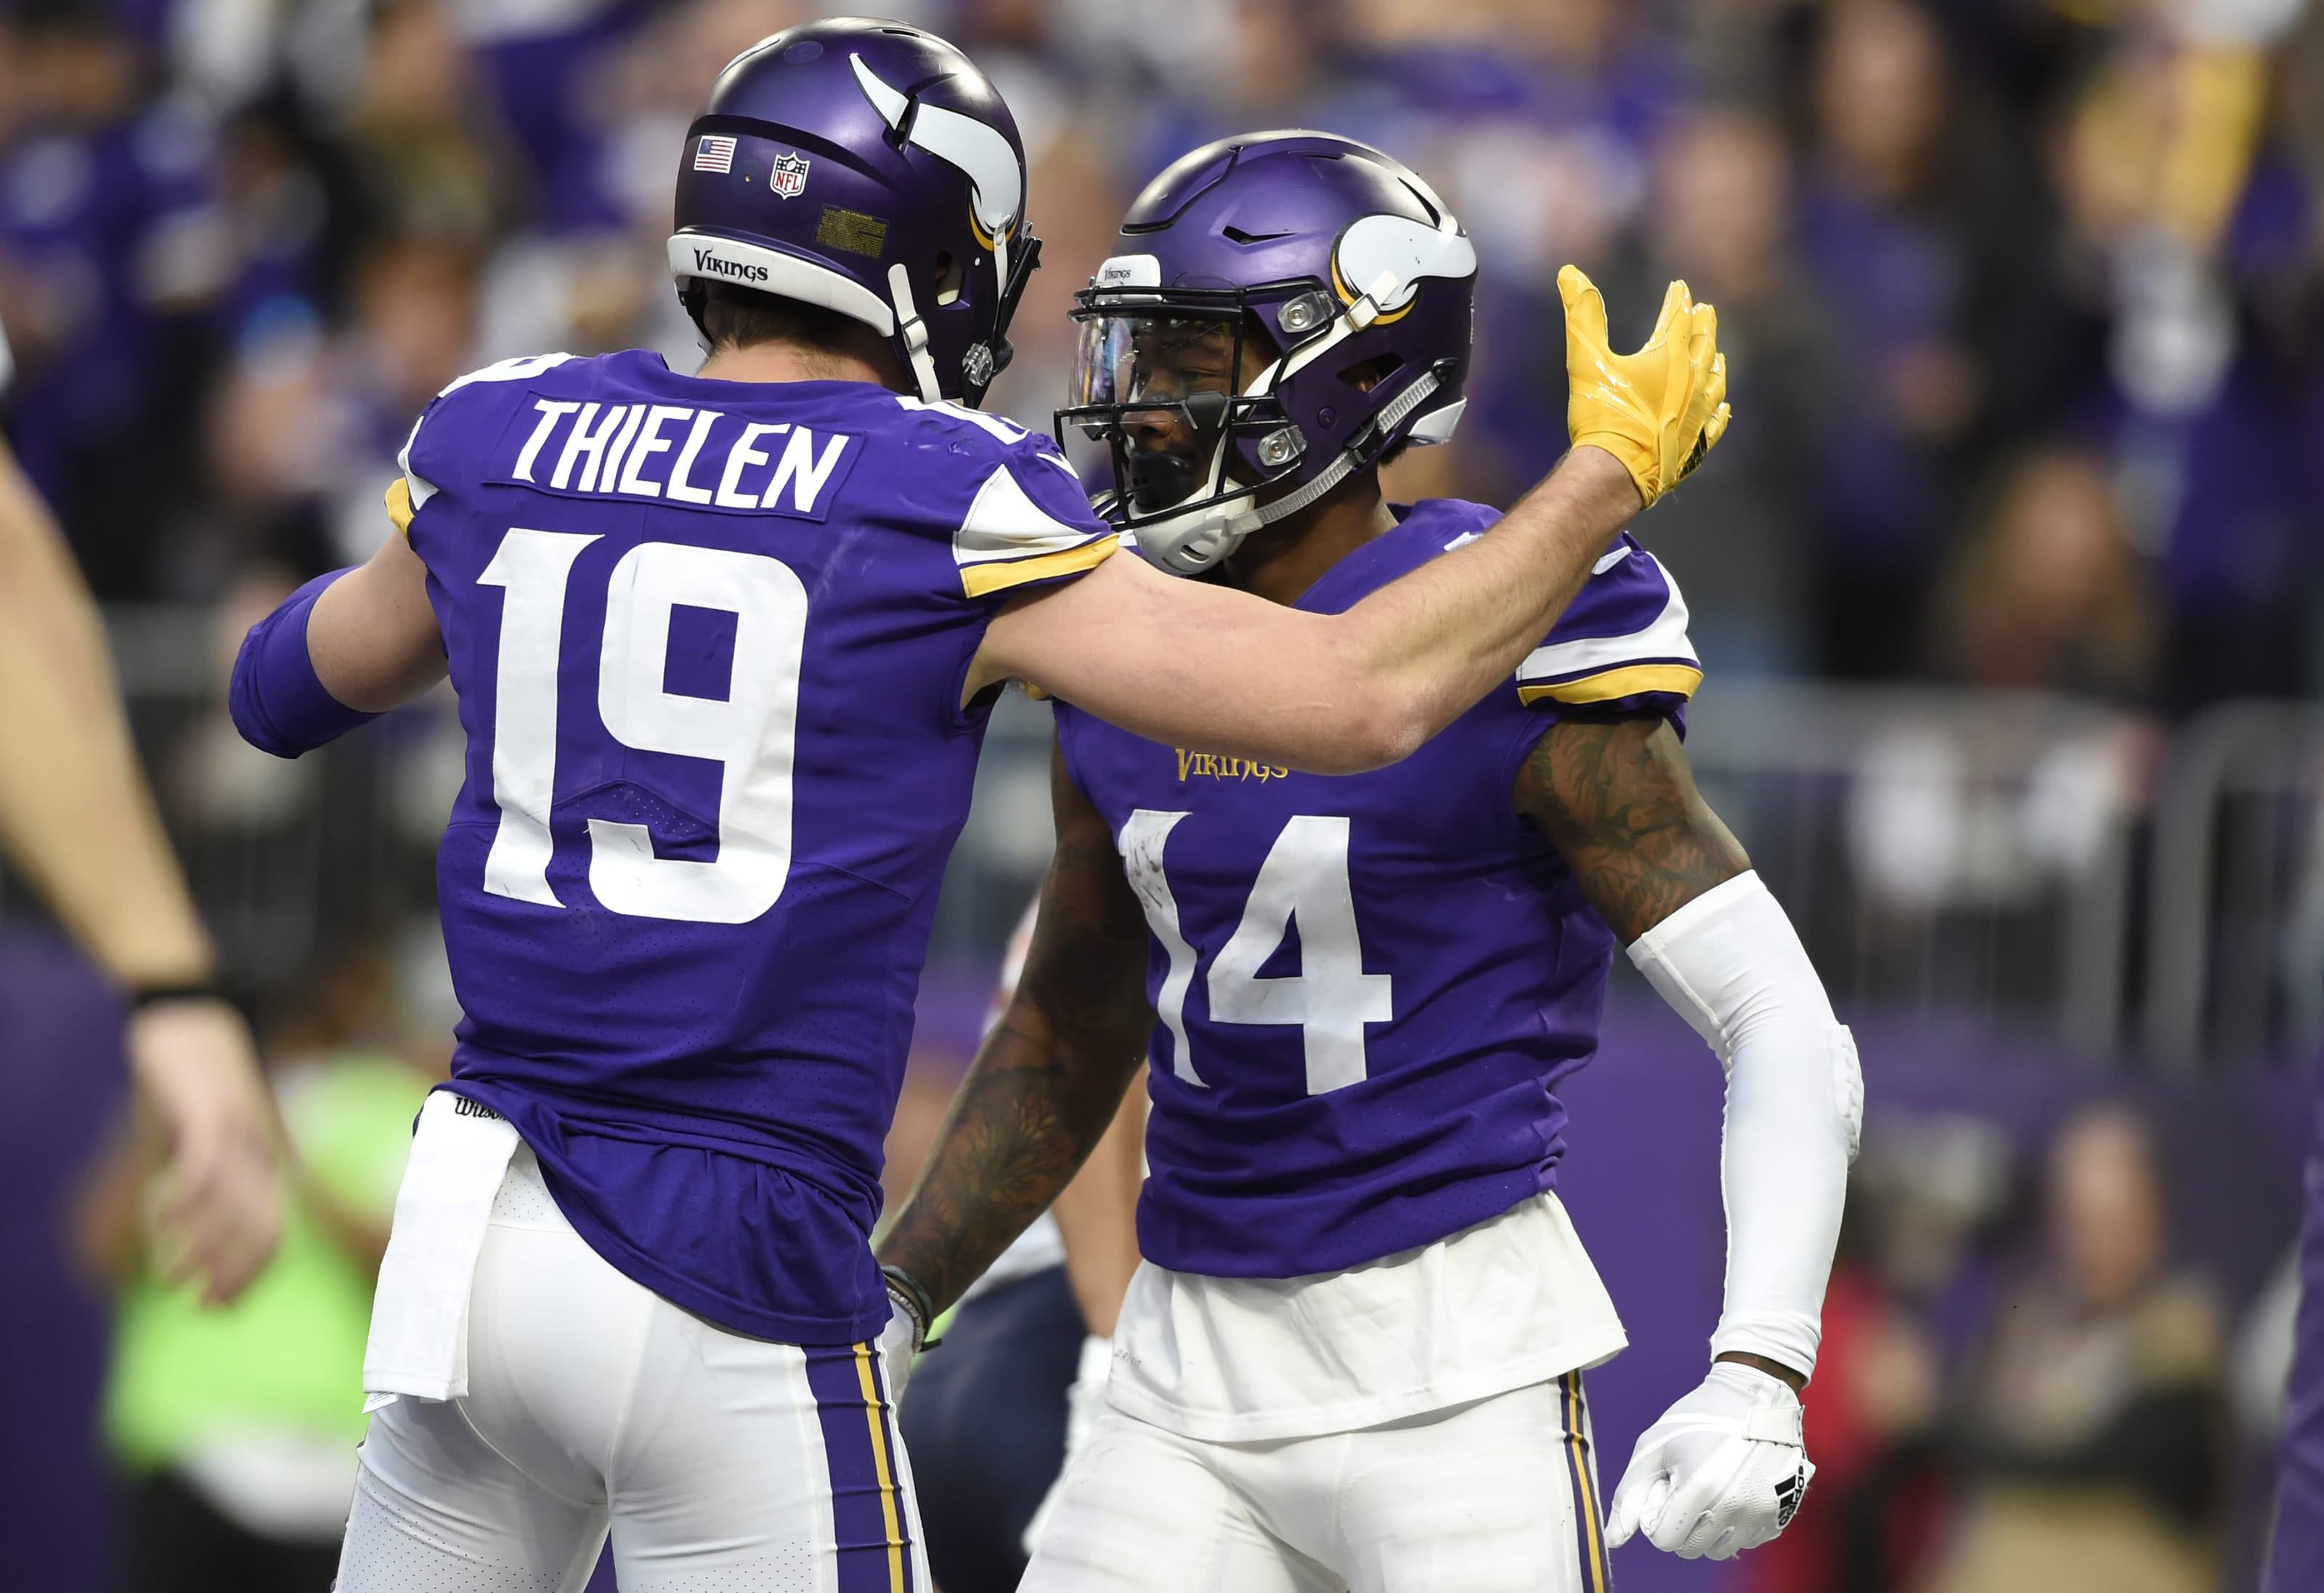 MINNEAPOLIS, MN - DECEMBER 31: Stefon Diggs #14 of the Minnesota Vikings celebrates with teammate Adam Thielen #19 after scoring a touchdown in the third quarter of the game against the Chicago Bears on December 31, 2017 at U.S. Bank Stadium in Minneapolis, Minnesota. (Photo by Hannah Foslien/Getty Images)